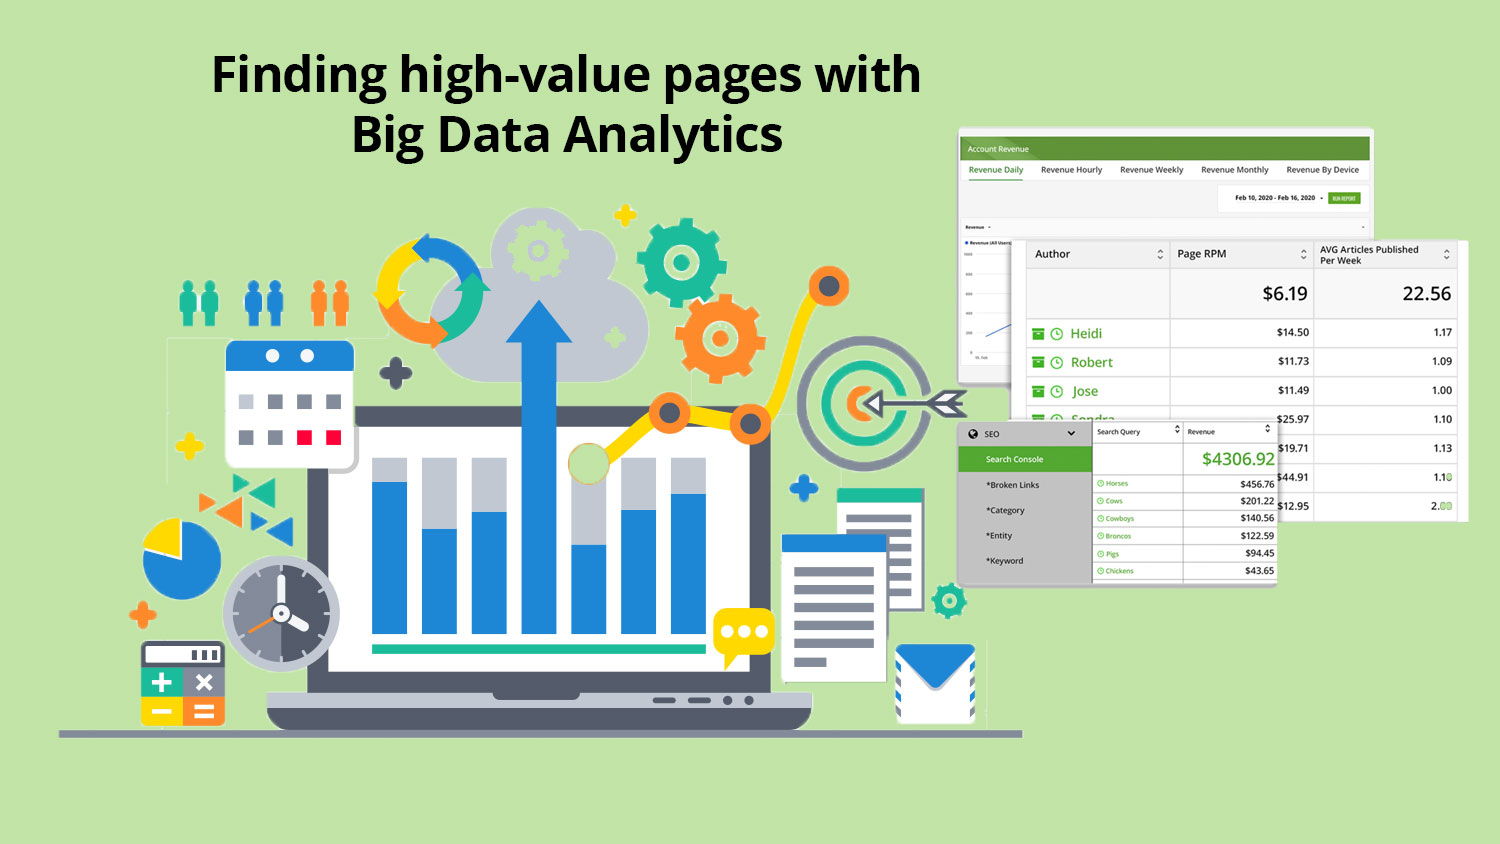 How to find high-value pages and increase revenue using Big Data Analytics